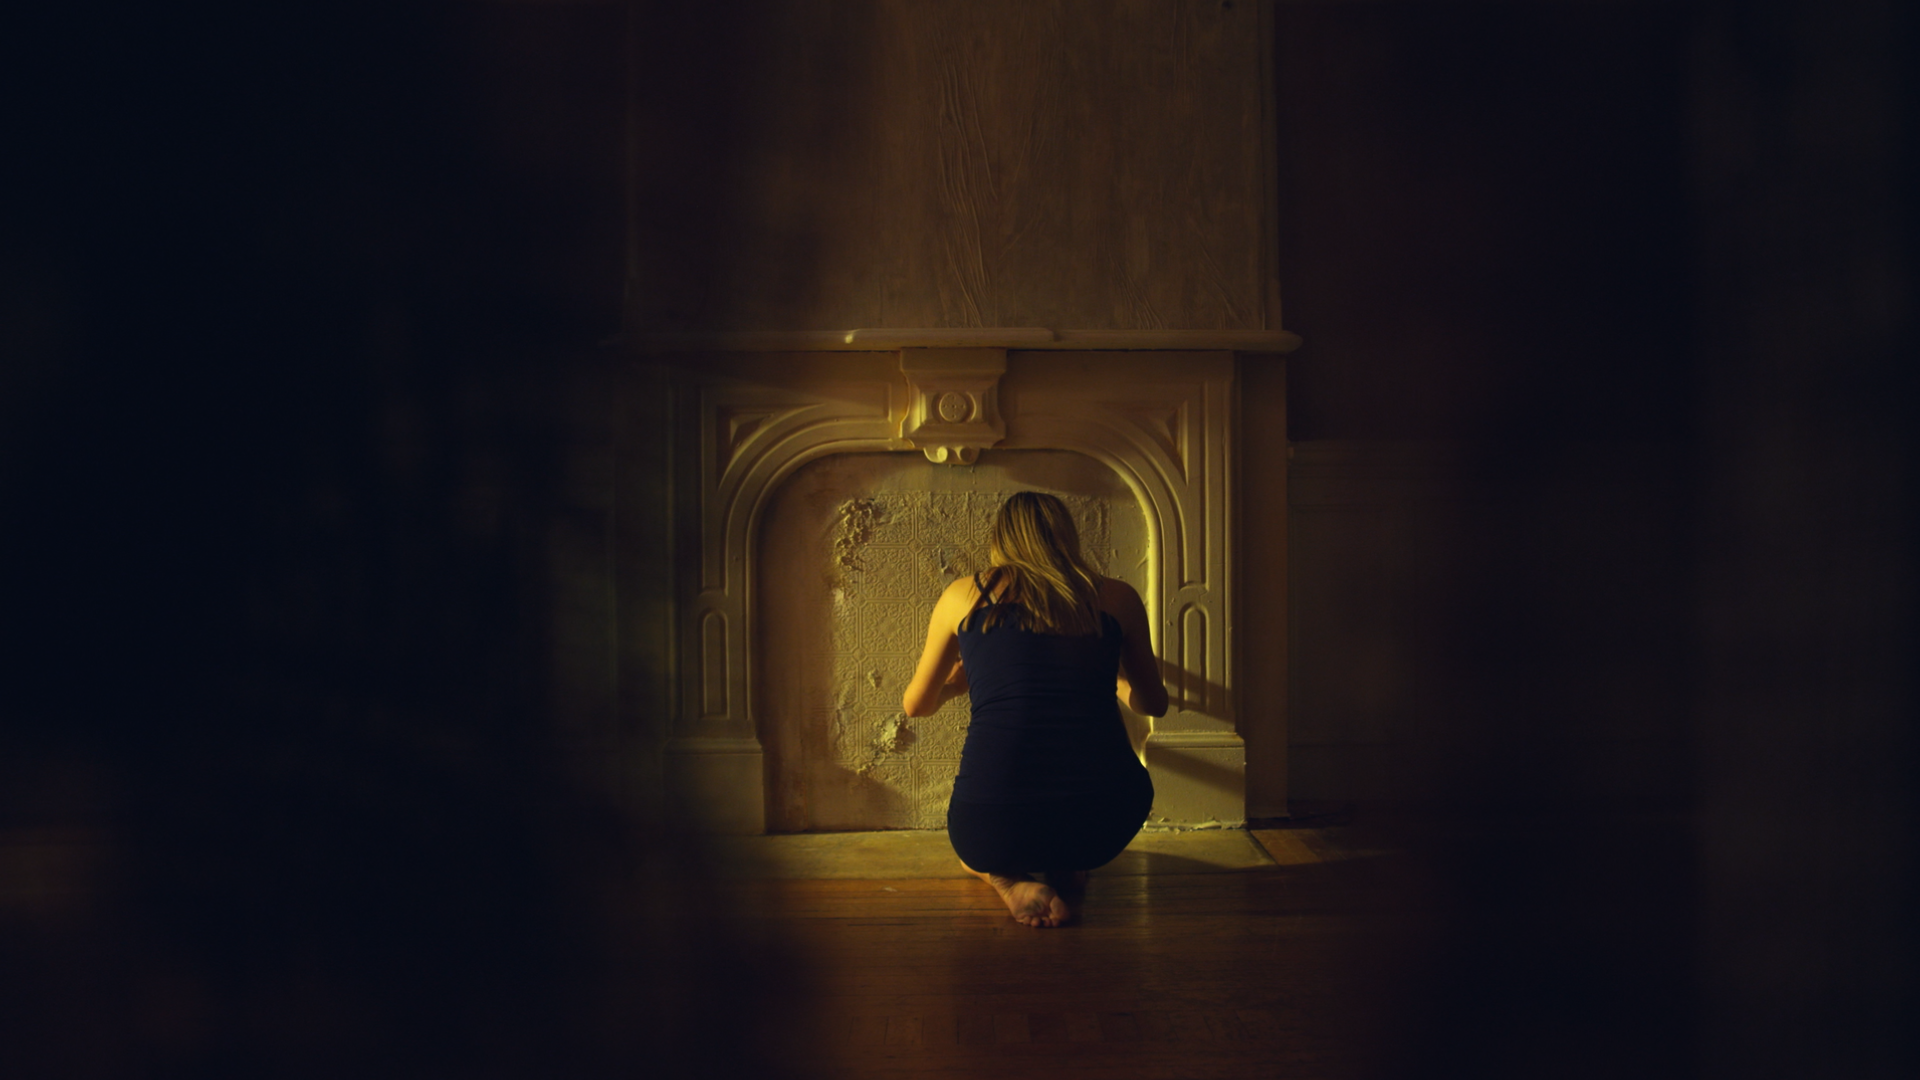 BehindtheWall-fireplace.png